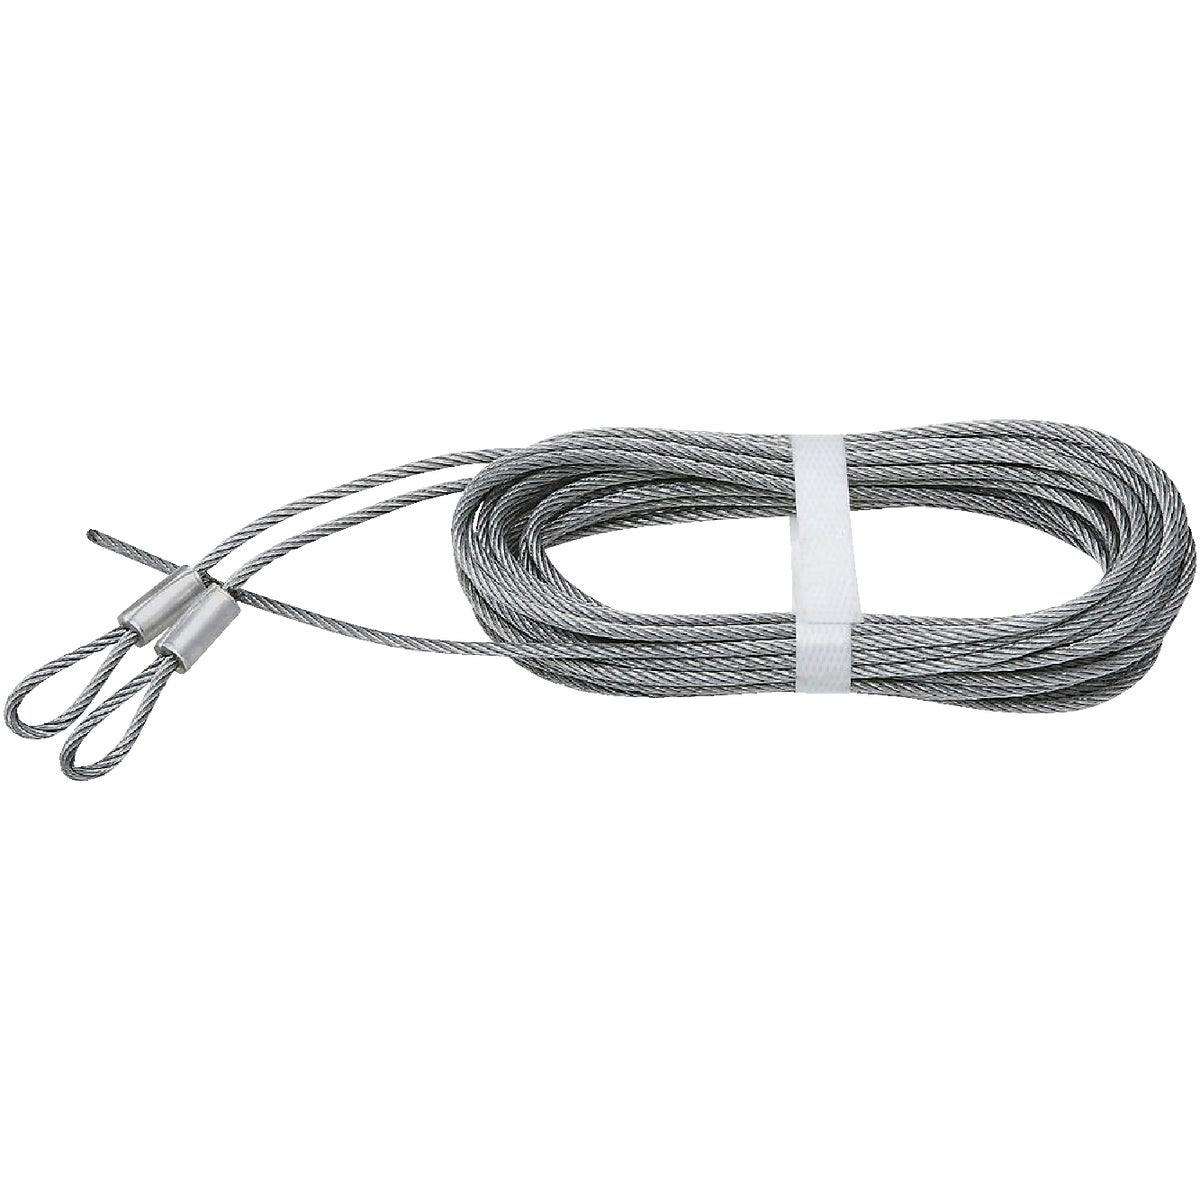 12' EXTENSION CABLE